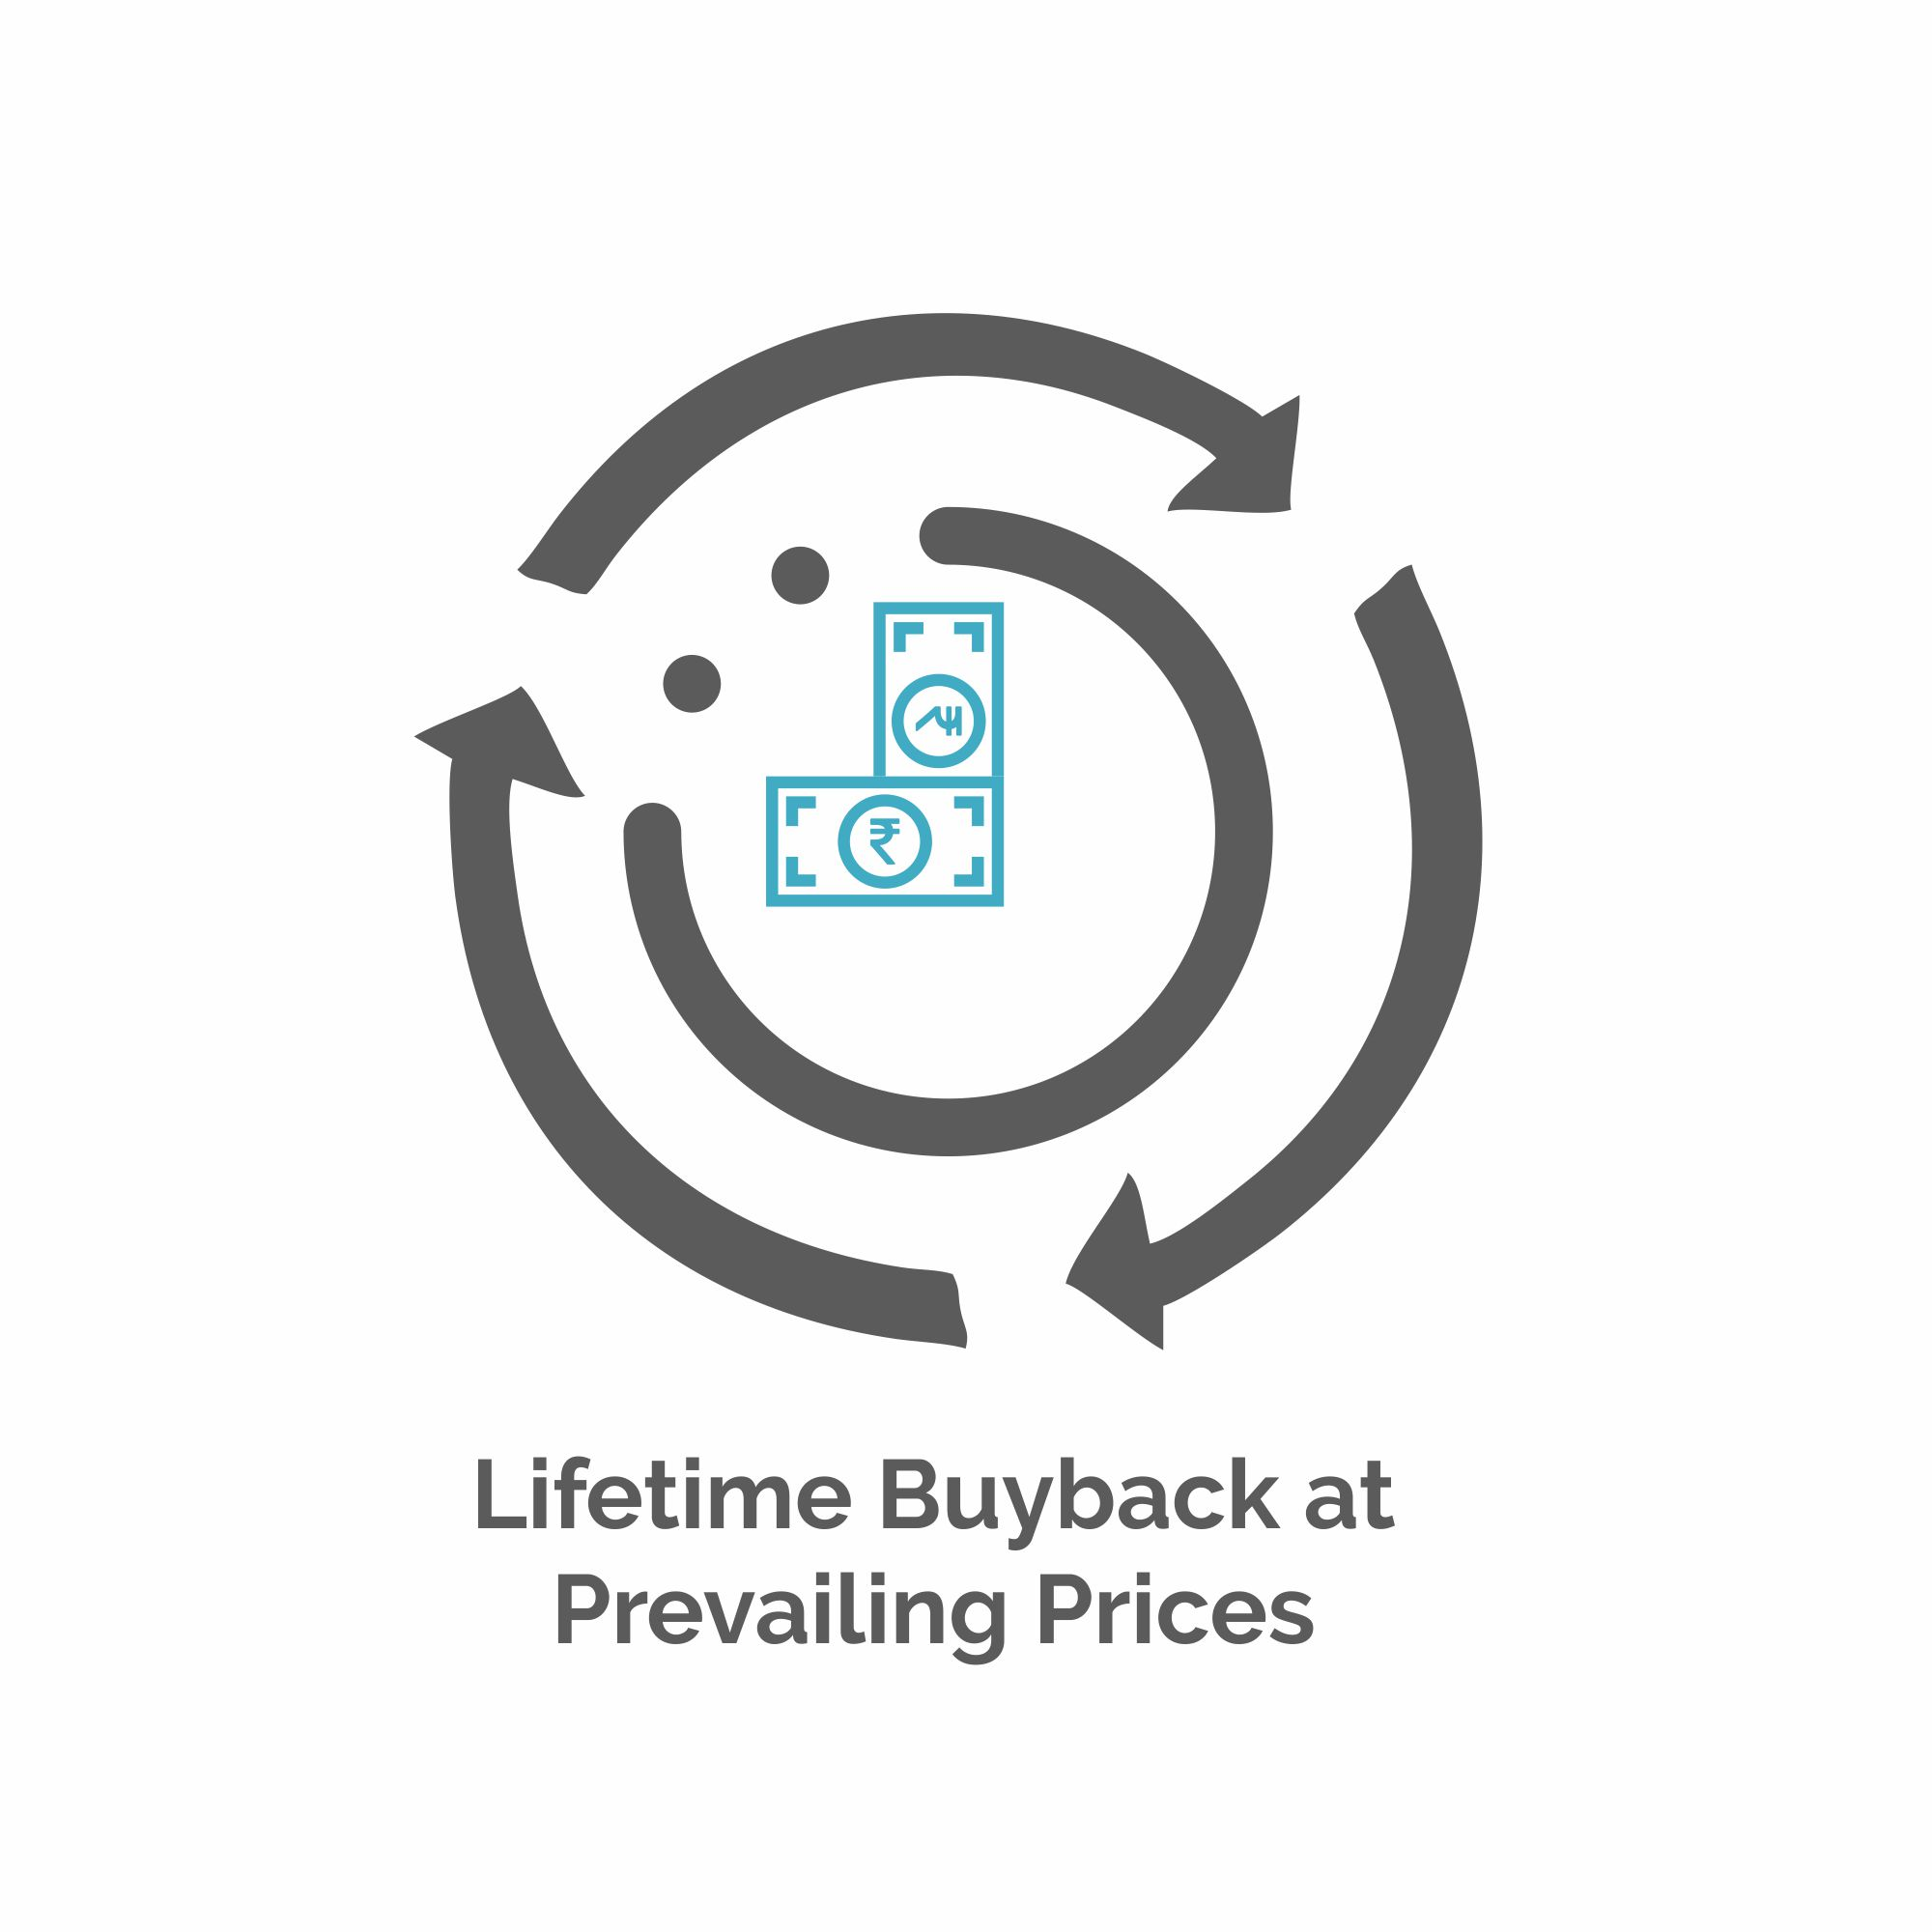 Lifetime Buyback at Prevailing Prices